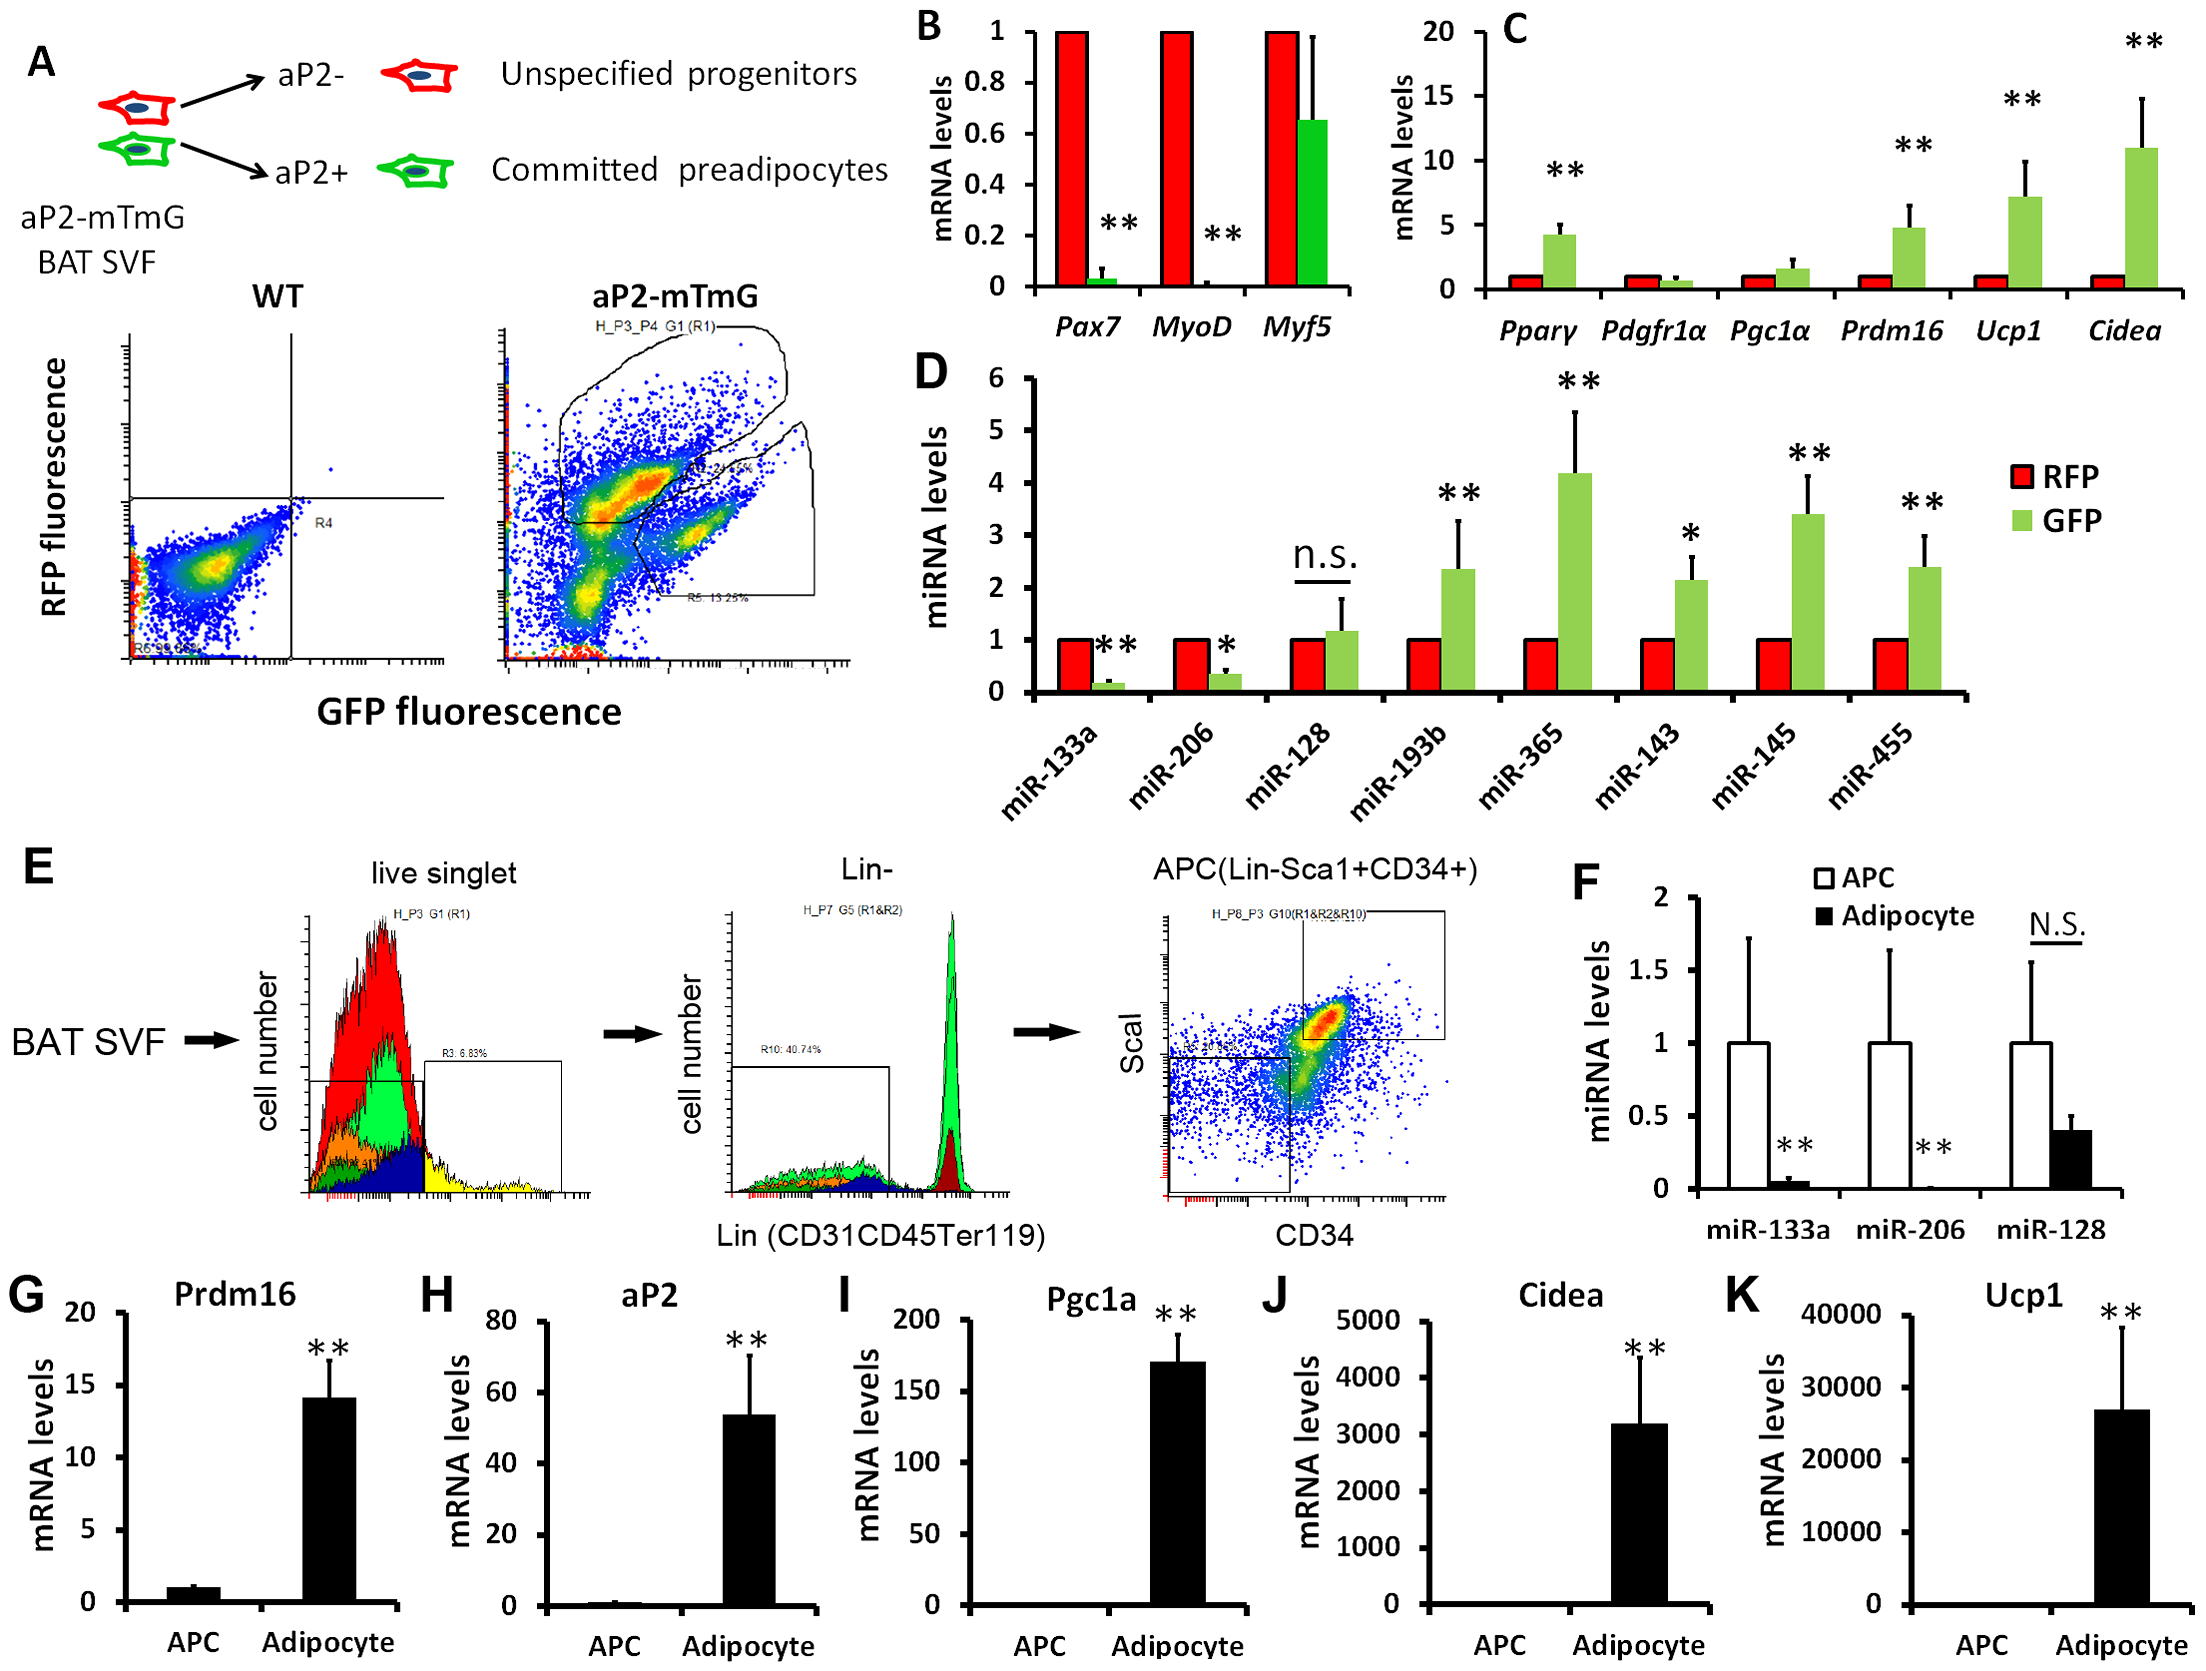 Downregulation of miR-133a with upregulation of <i>Prdm16</i> along brown adipocyte commitment and differentiation.